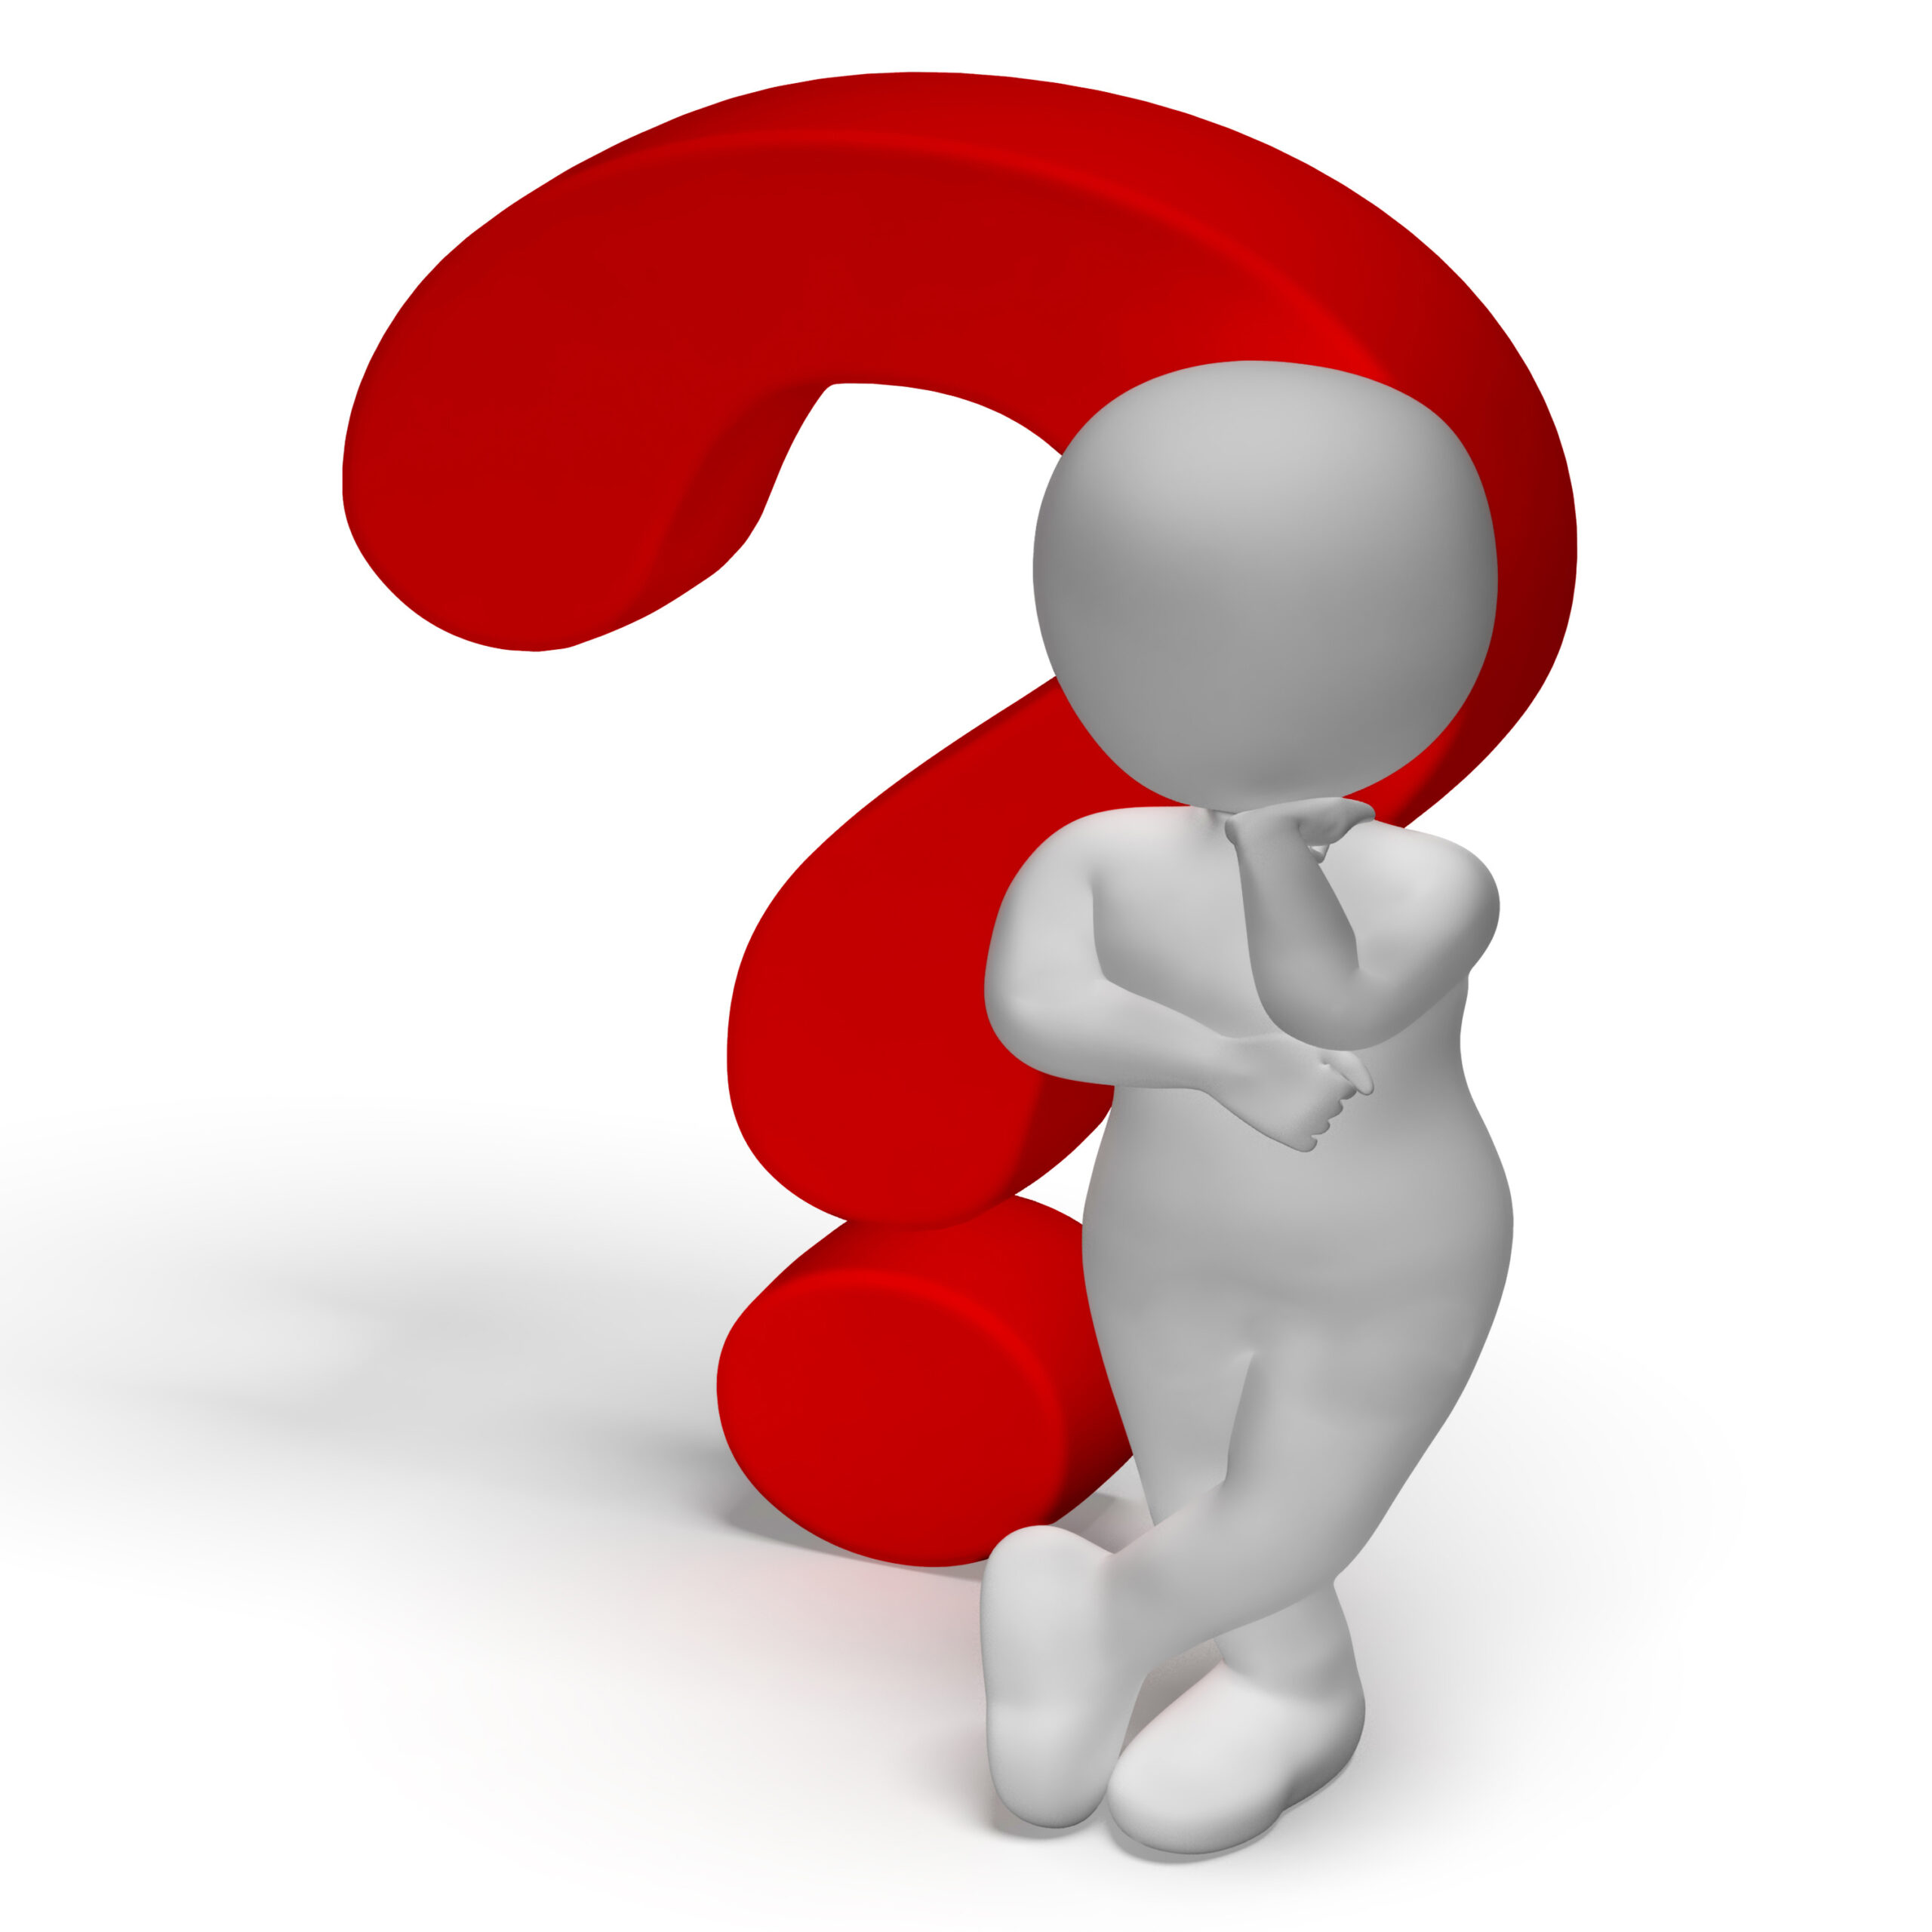 Question Marks And Man Shows Confusion Or Unsure